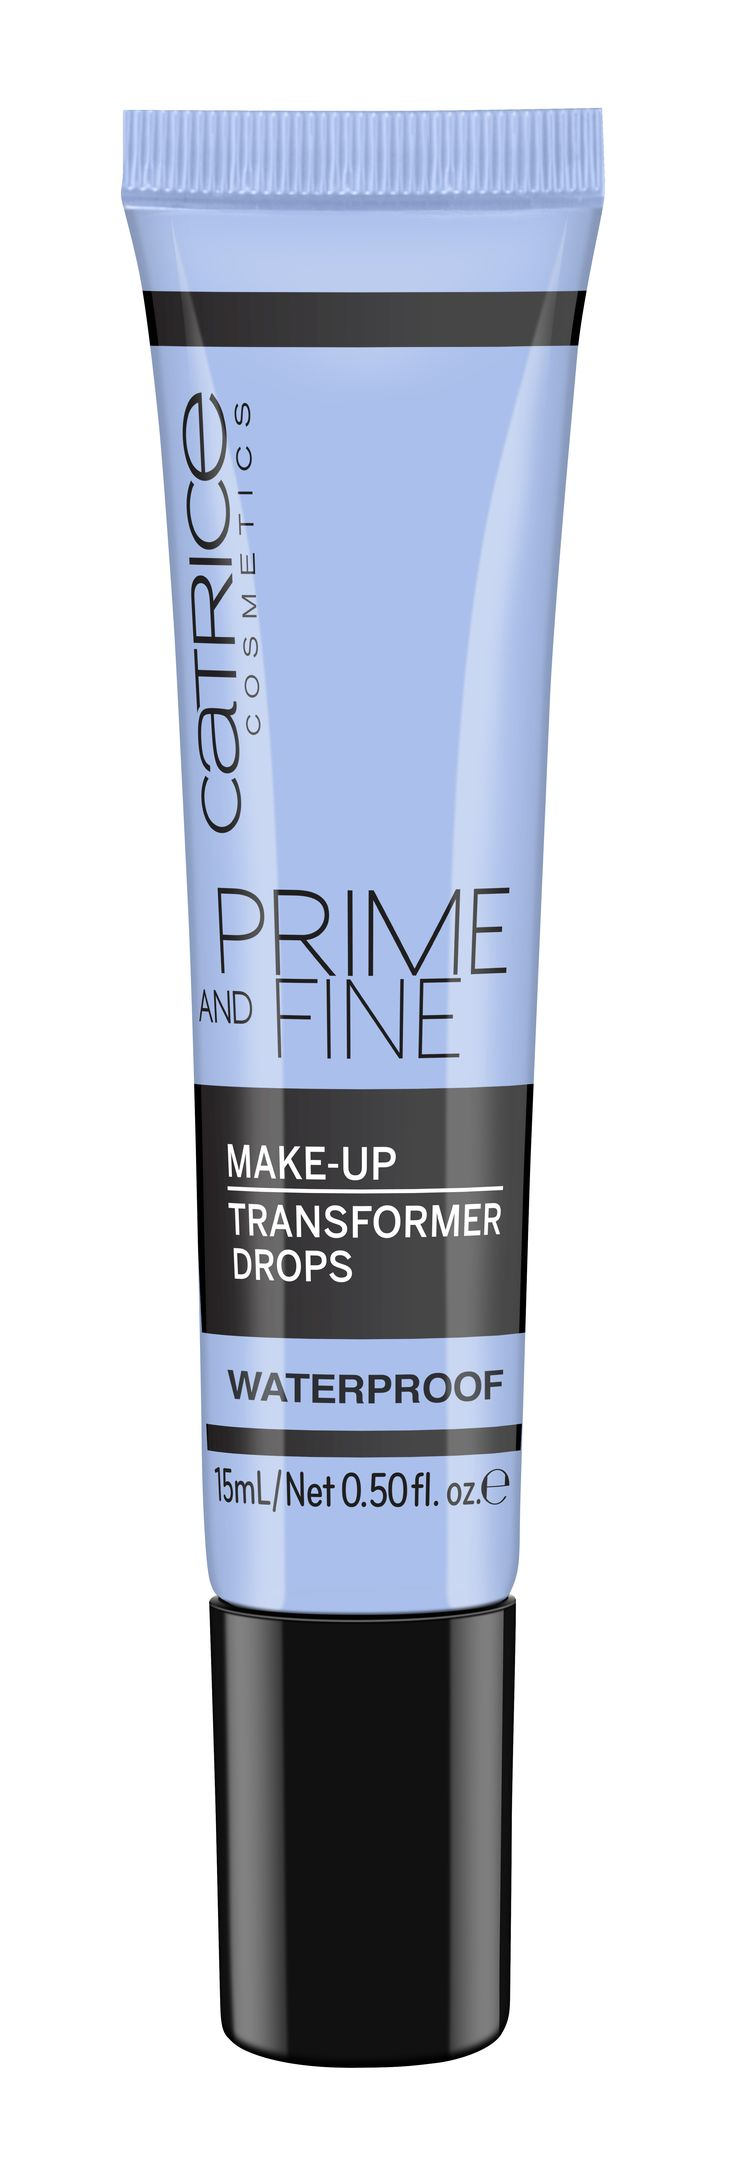 CATRICE PRIME AND FINE MAKE UP TRANSFORMER DROPS WATERPROOF